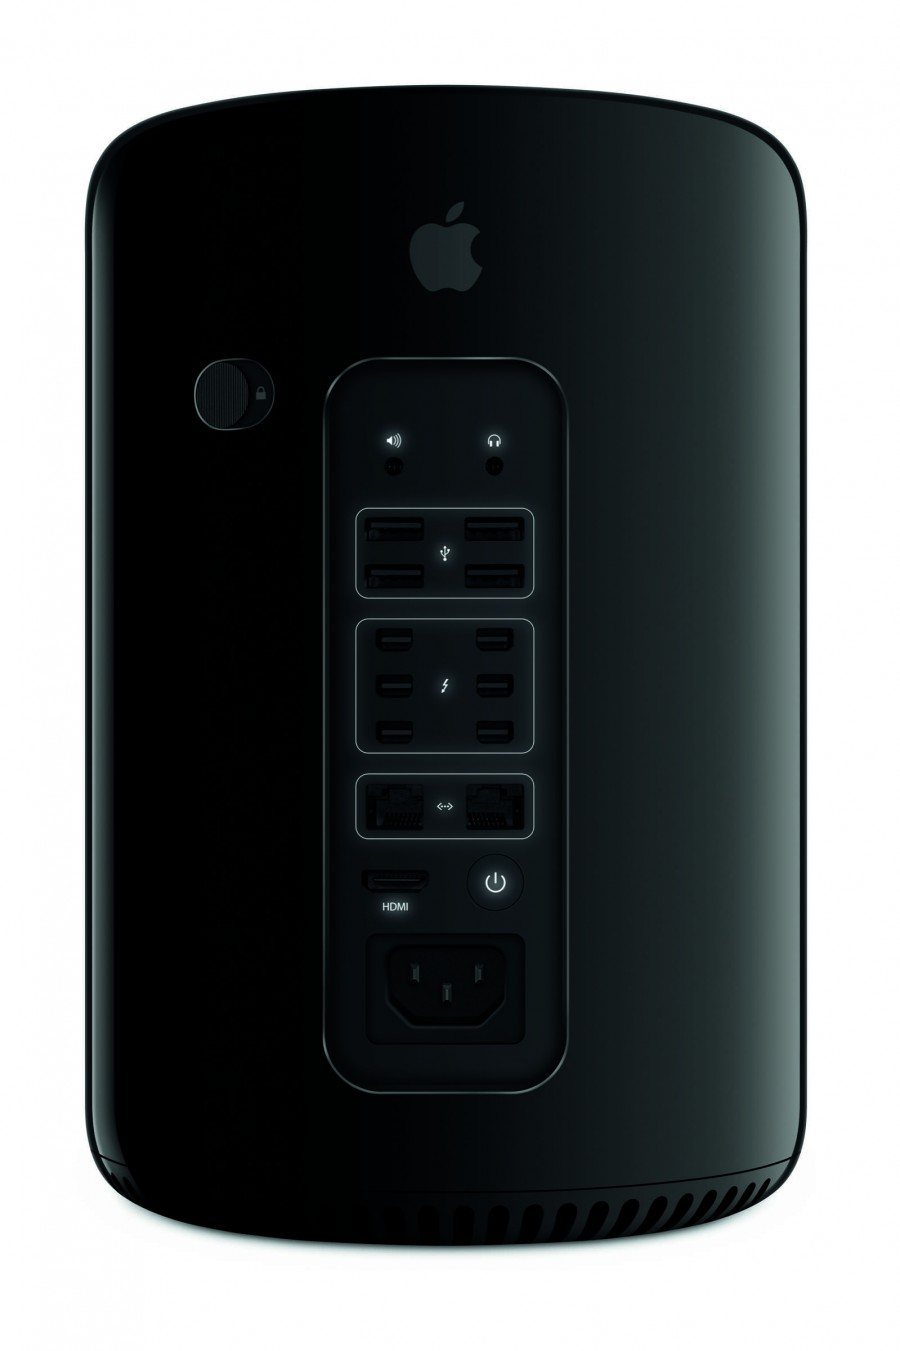 Mac Pro rear view